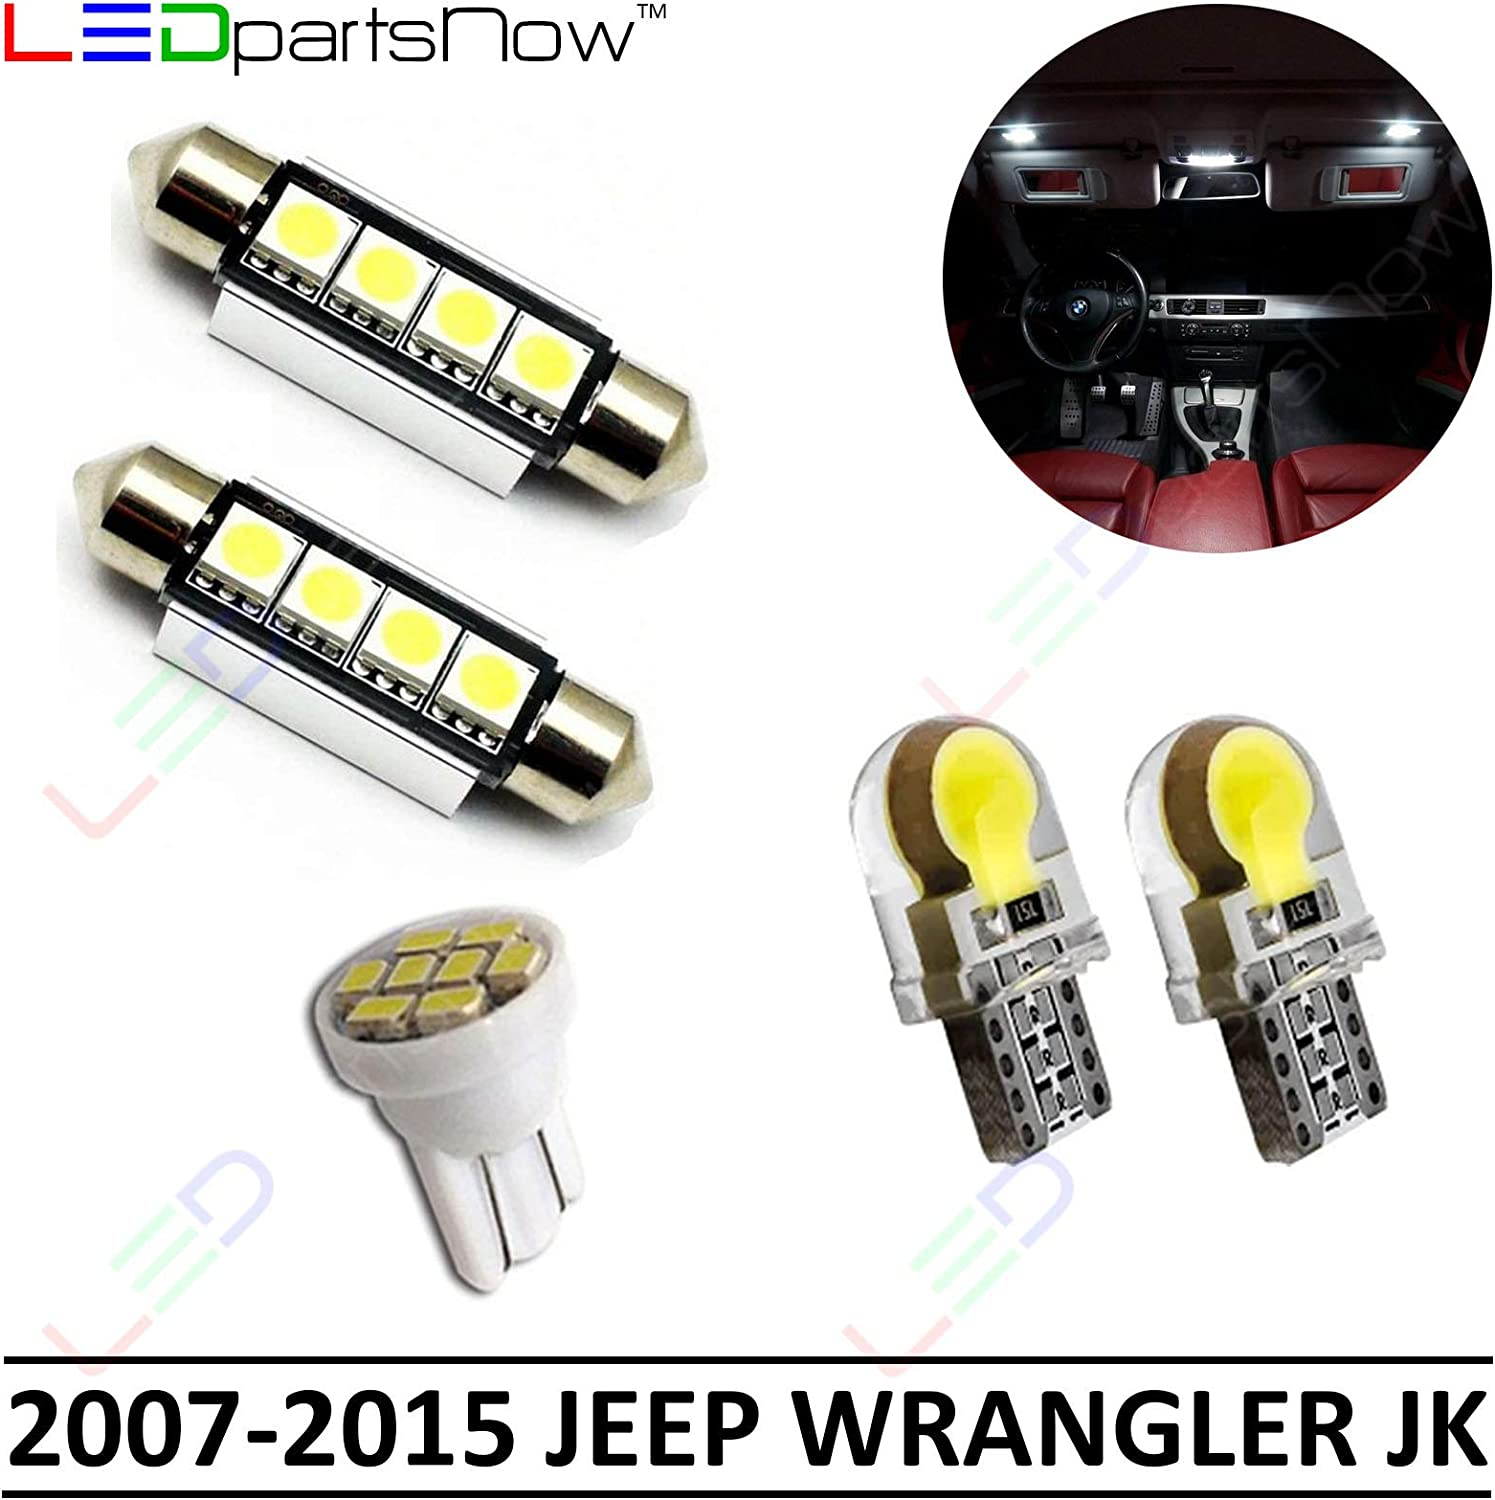 2015 Jeep Wrangler Accessories >> Ledpartsnow Interior Led Lights Replacement For 2007 2015 Jeep Wrangler Jk Accessories Package Kit 5 Bulbs White